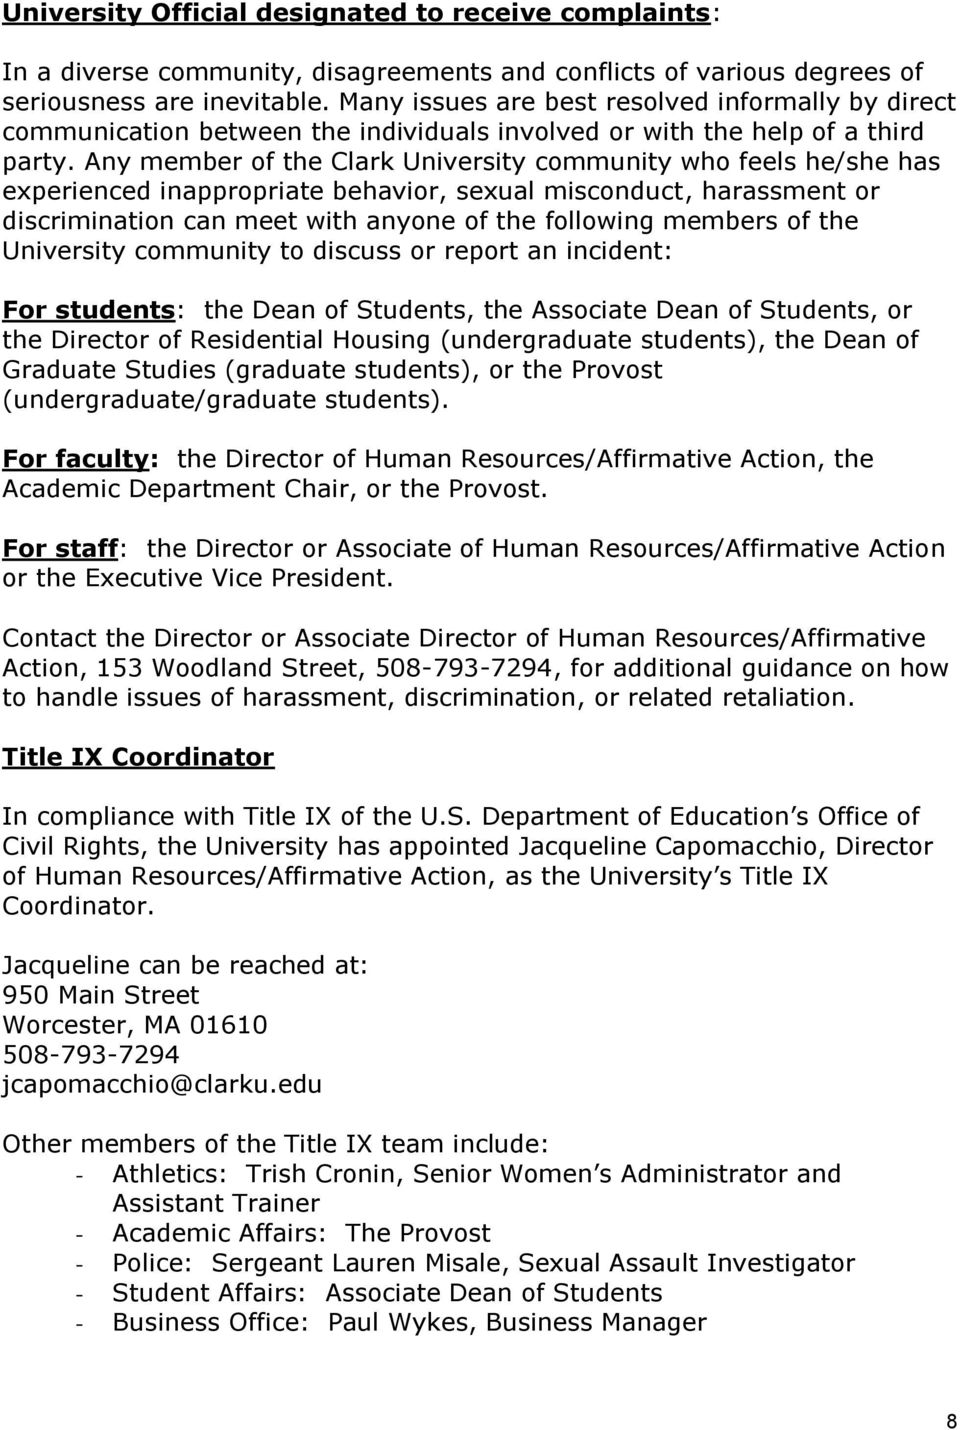 Any member of the Clark University community who feels he/she has experienced inappropriate behavior, sexual misconduct, harassment or discrimination can meet with anyone of the following members of